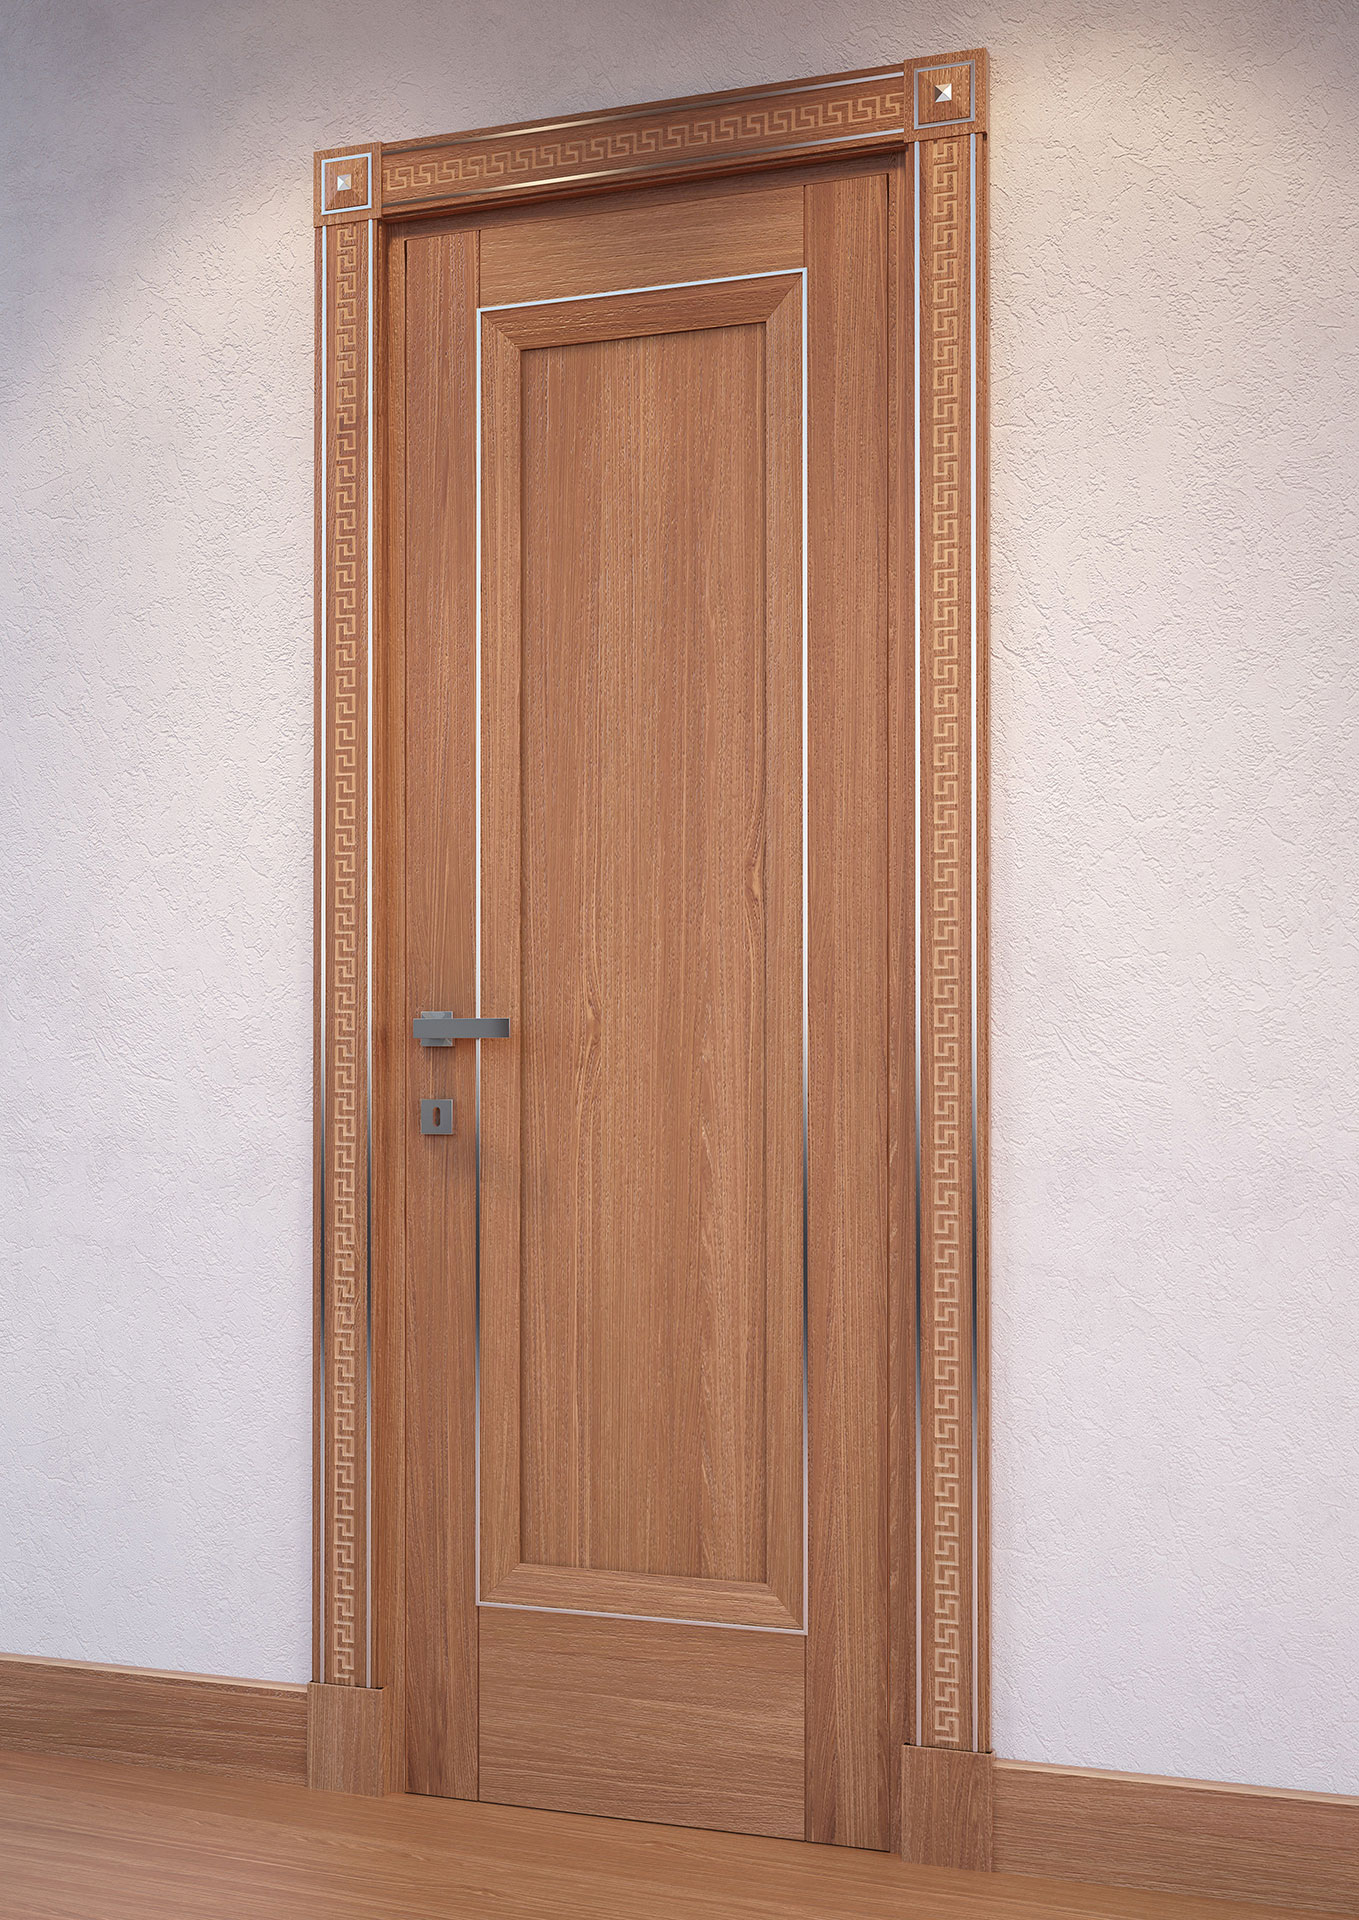 Faoma smooth door in light-toned wood